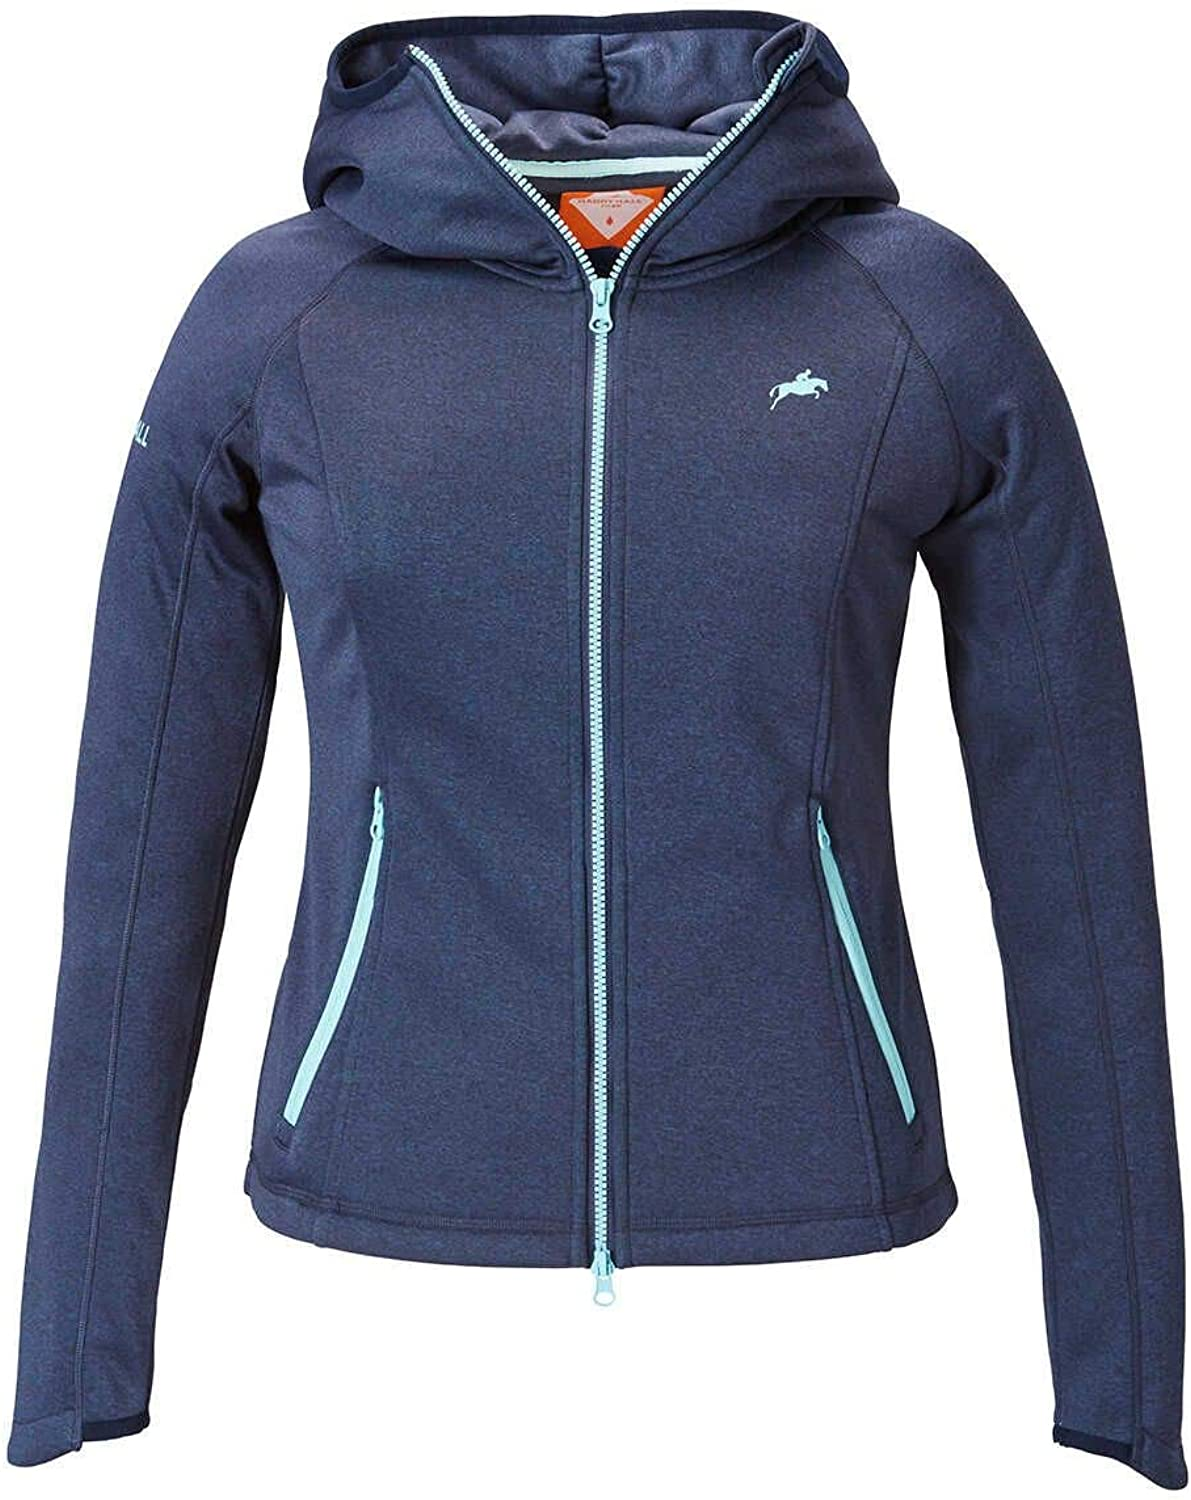 Harry Hall Women's Hh5648-bl11 Shelley Softshell Jacket